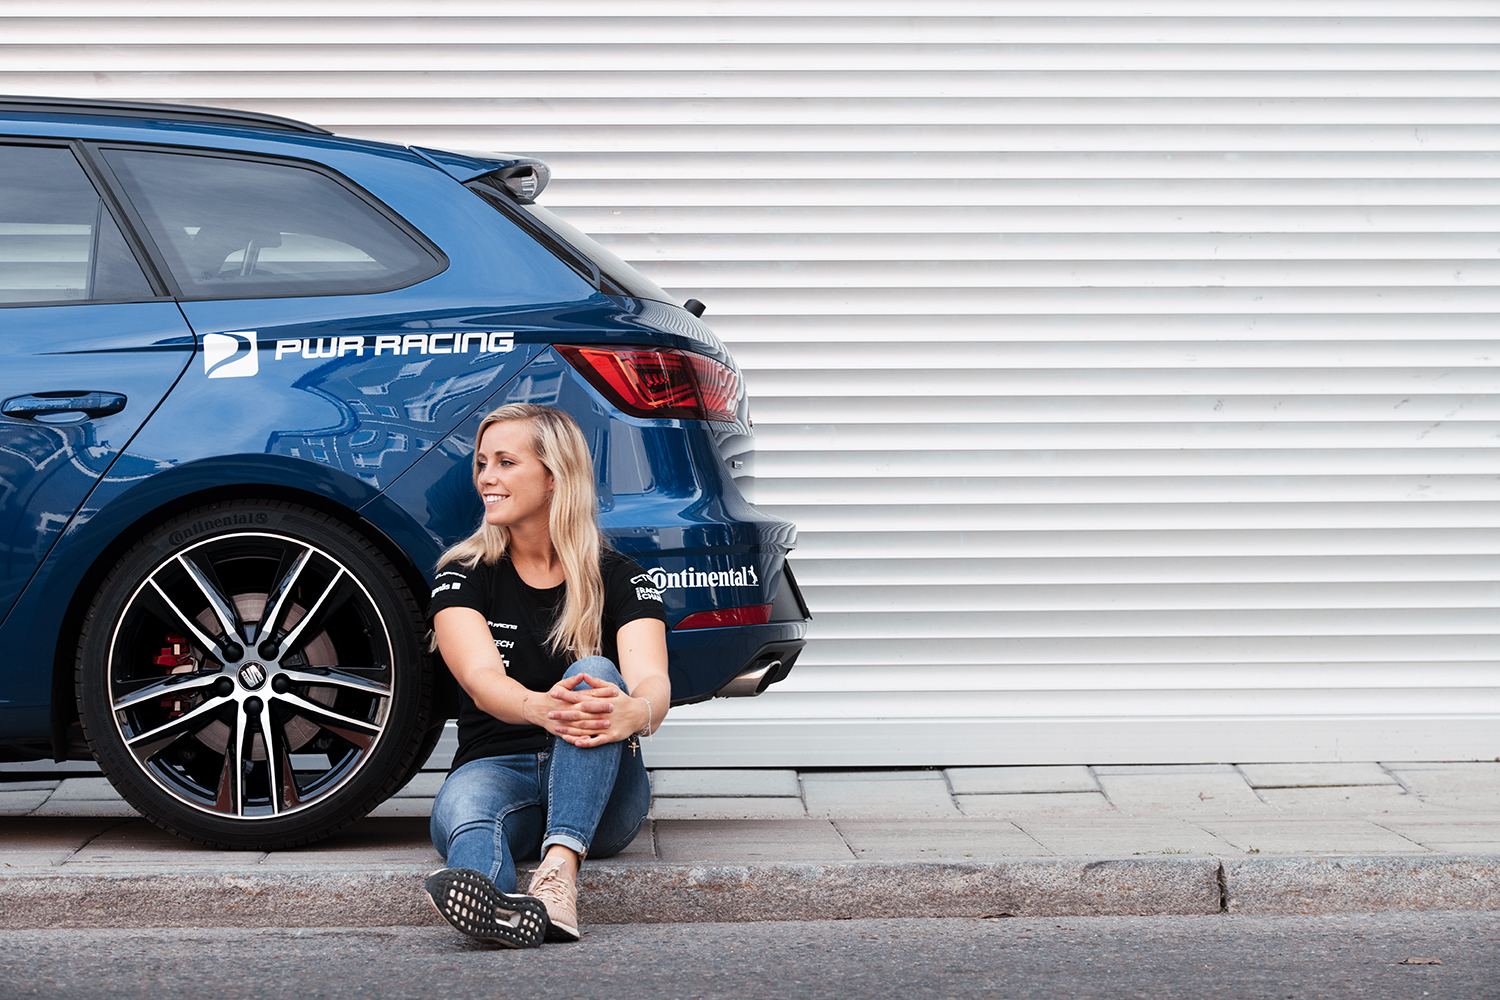 Swedish racing driver Mikaela Åhlin-Kottulinsky is test driver for Continental's Extreme E tyres